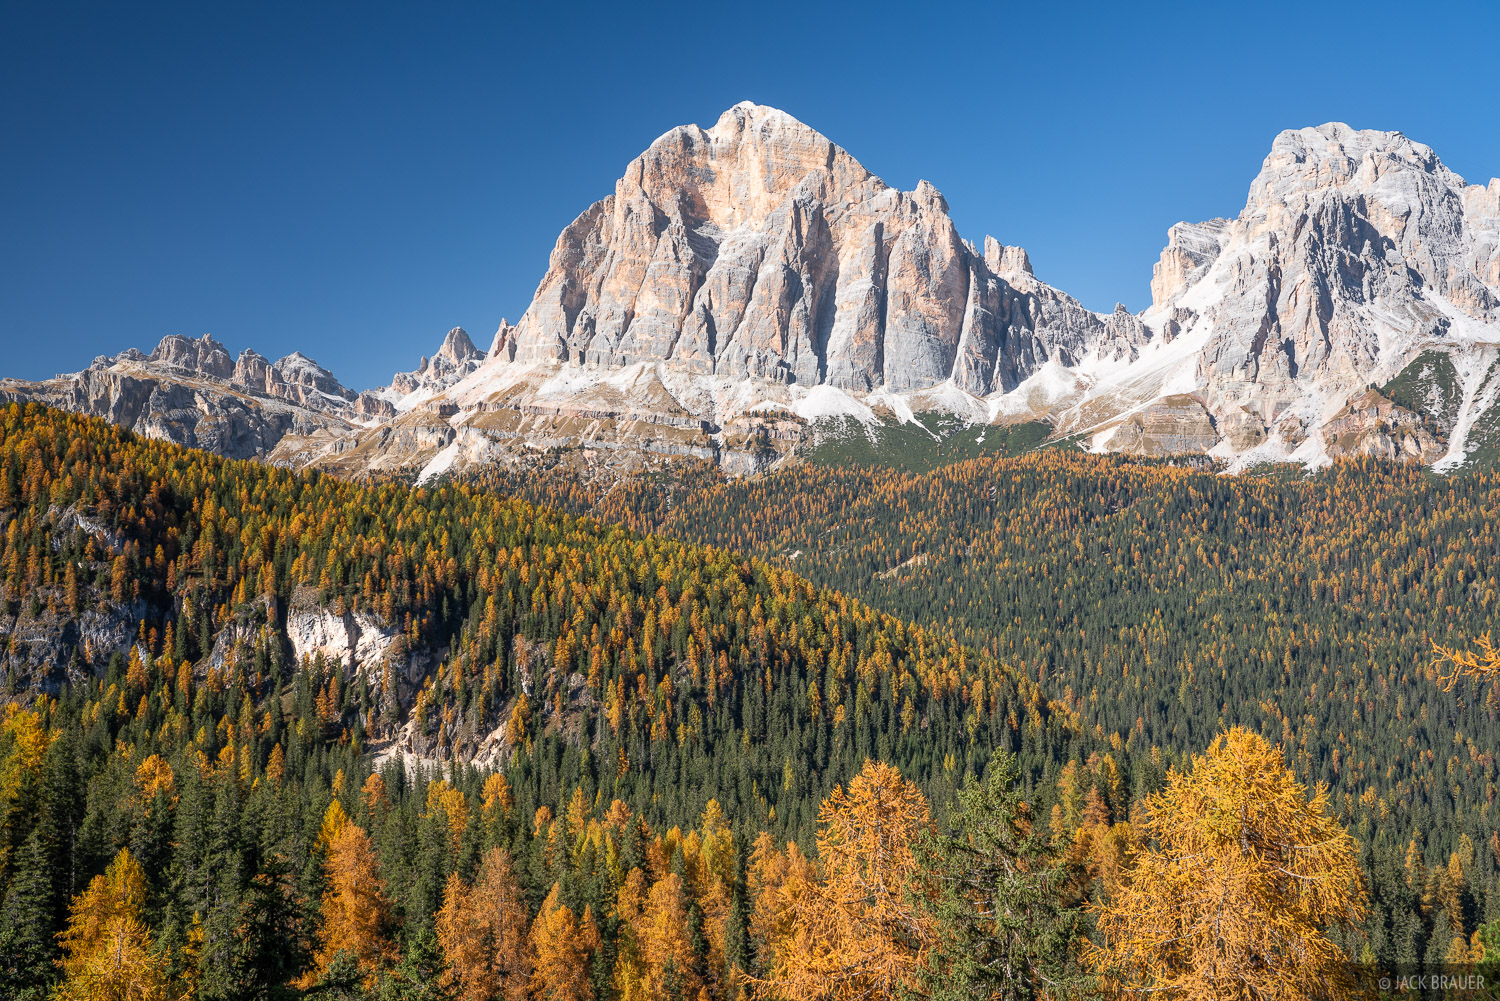 Dolomites, Italy, Tofana de Rozes, larch, October, Alps, photo